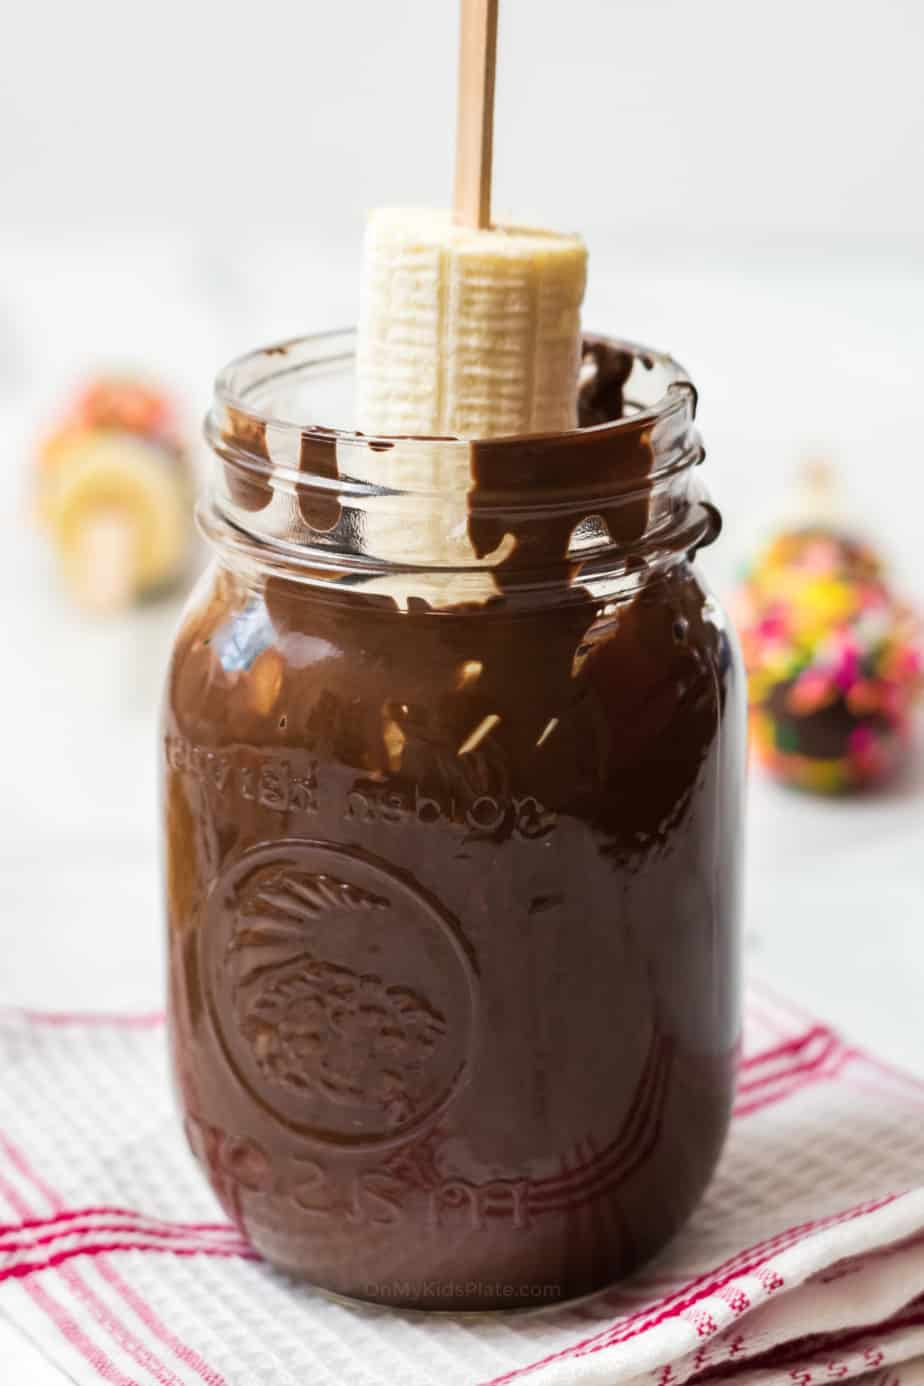 Banana on a stick being dipped in large jar of chocolate.